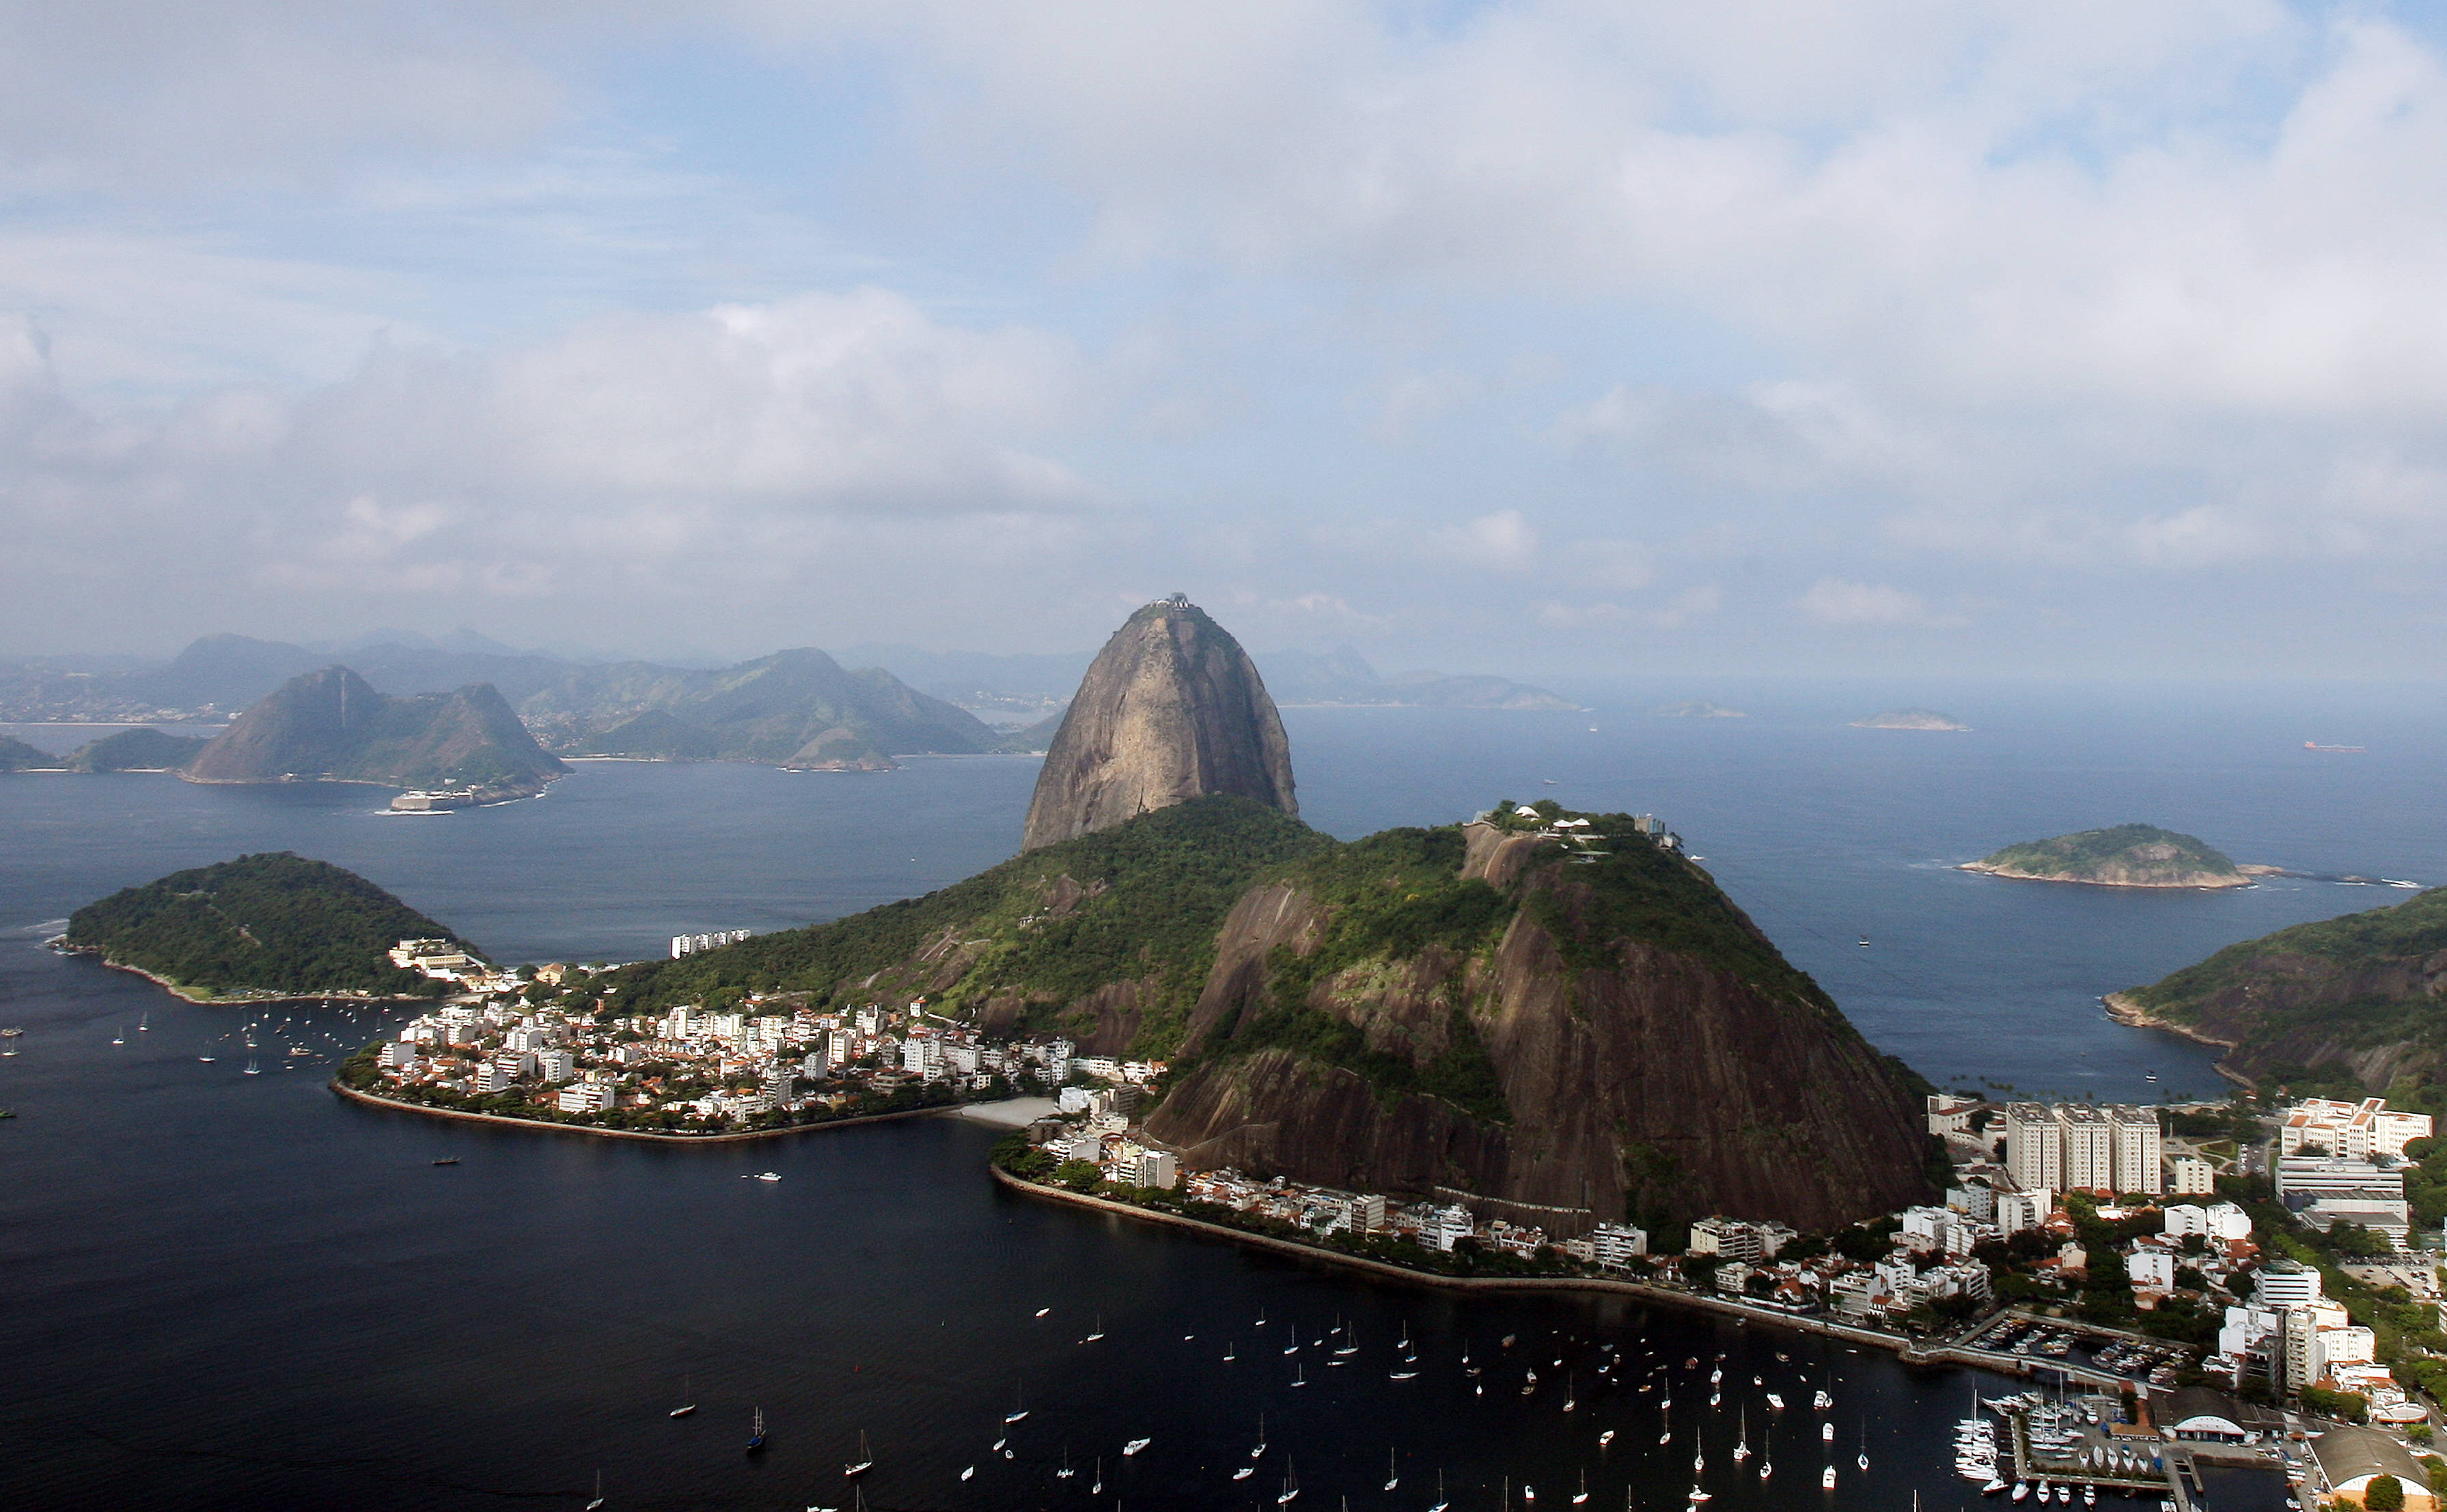 Microsoft will invest $100 million in Rio de Janeiro with new tech center